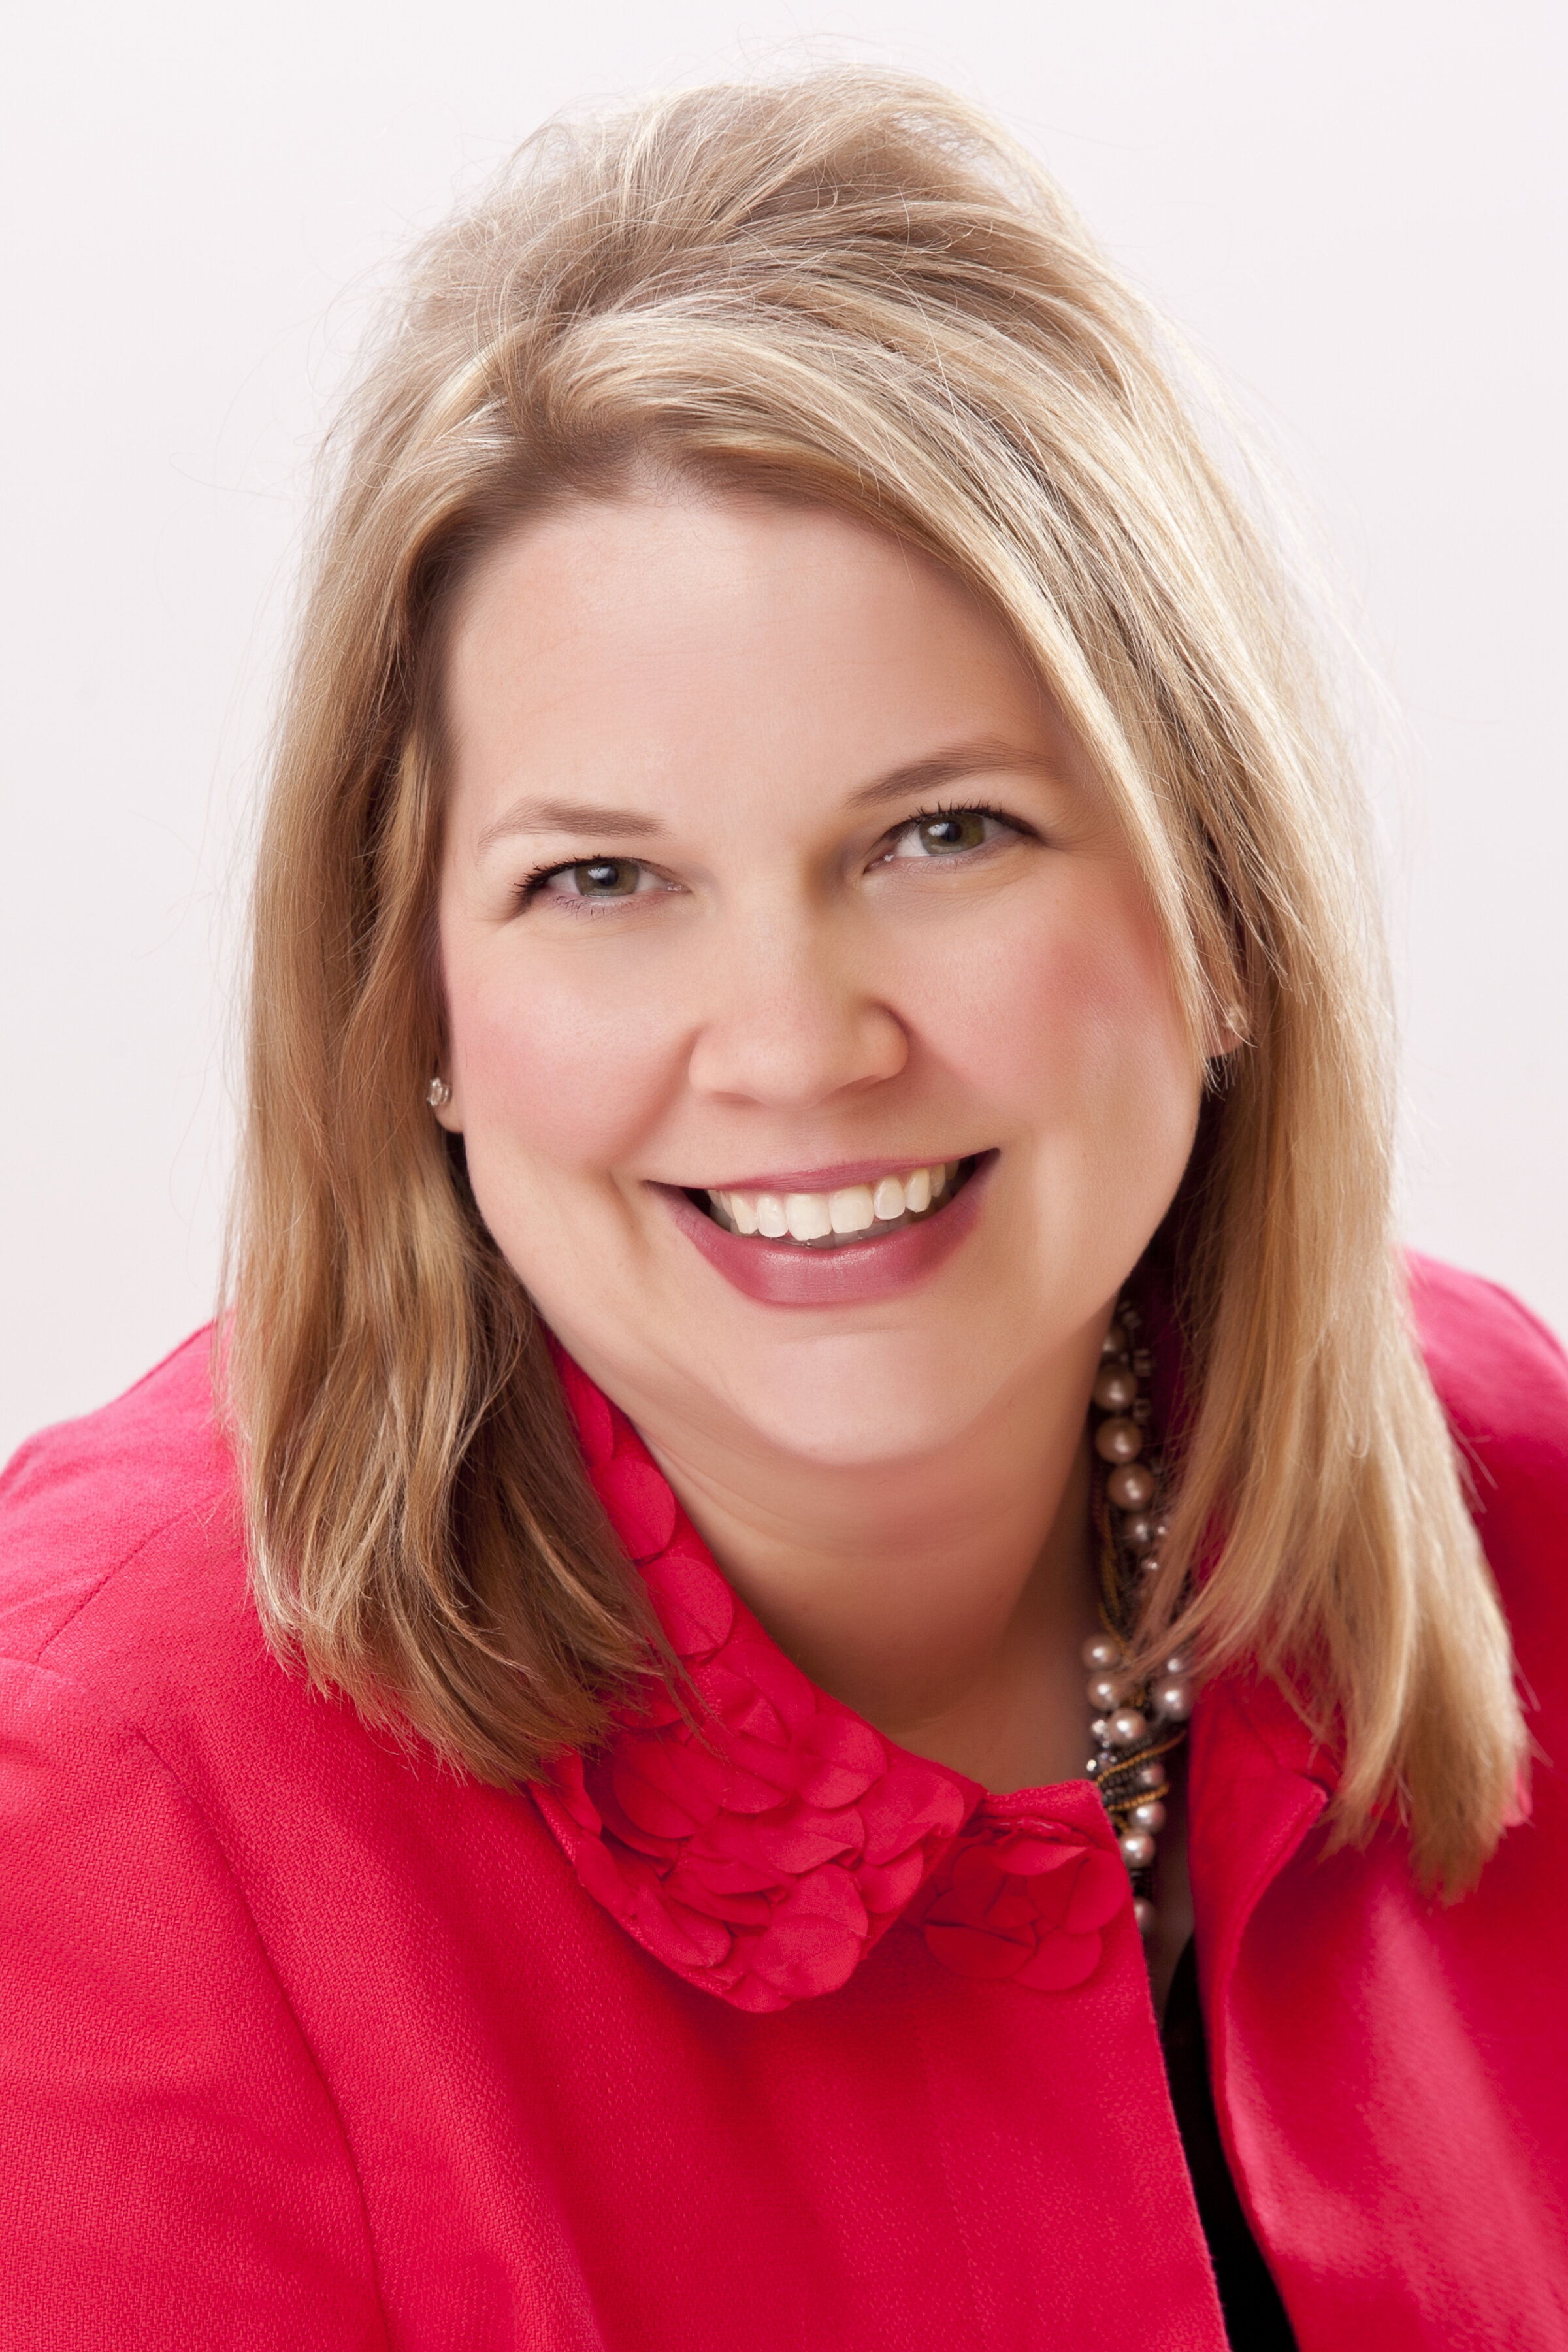 Beth Jensen - Beth Jensen is secretary of Emily's Hope. She helped Angela form the non-profit and secure the backing of KELOLAND Media Group for the cause. Beth was named KELOLAND News Director in 2008. She has produced stories, newscasts and specials that have received national Edward R. Murrow awards, regional Emmys and recognition from the South Dakota Associated Press.She is Sioux Falls native and graduate of Boston University where she studied broadcast journalism and political science. Beth serves as an EmBe Women's Leadership Mentor, on the Washington Pavilion Board of Trustees, Levitt At The Falls Board of Directors and Sioux Falls Thrive Board of Directors.